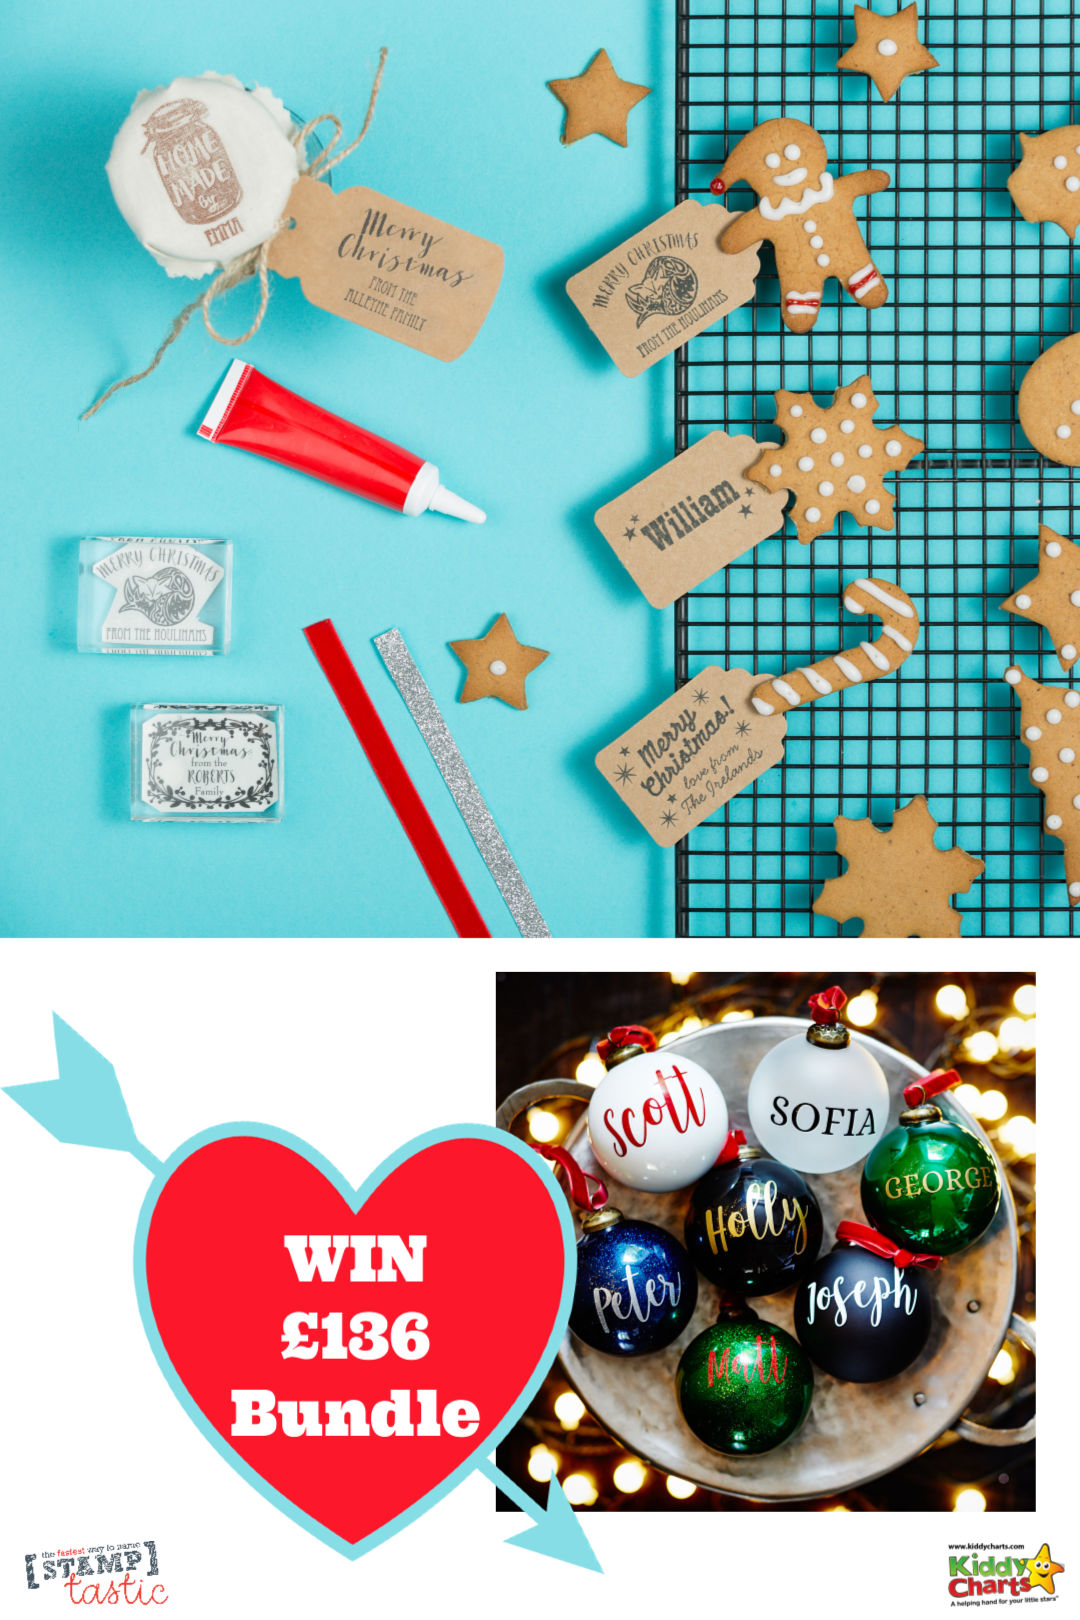 Win £136 of goodies from Stamptastic for a fabulous personalised Christmas! #giveaways #win #christmas